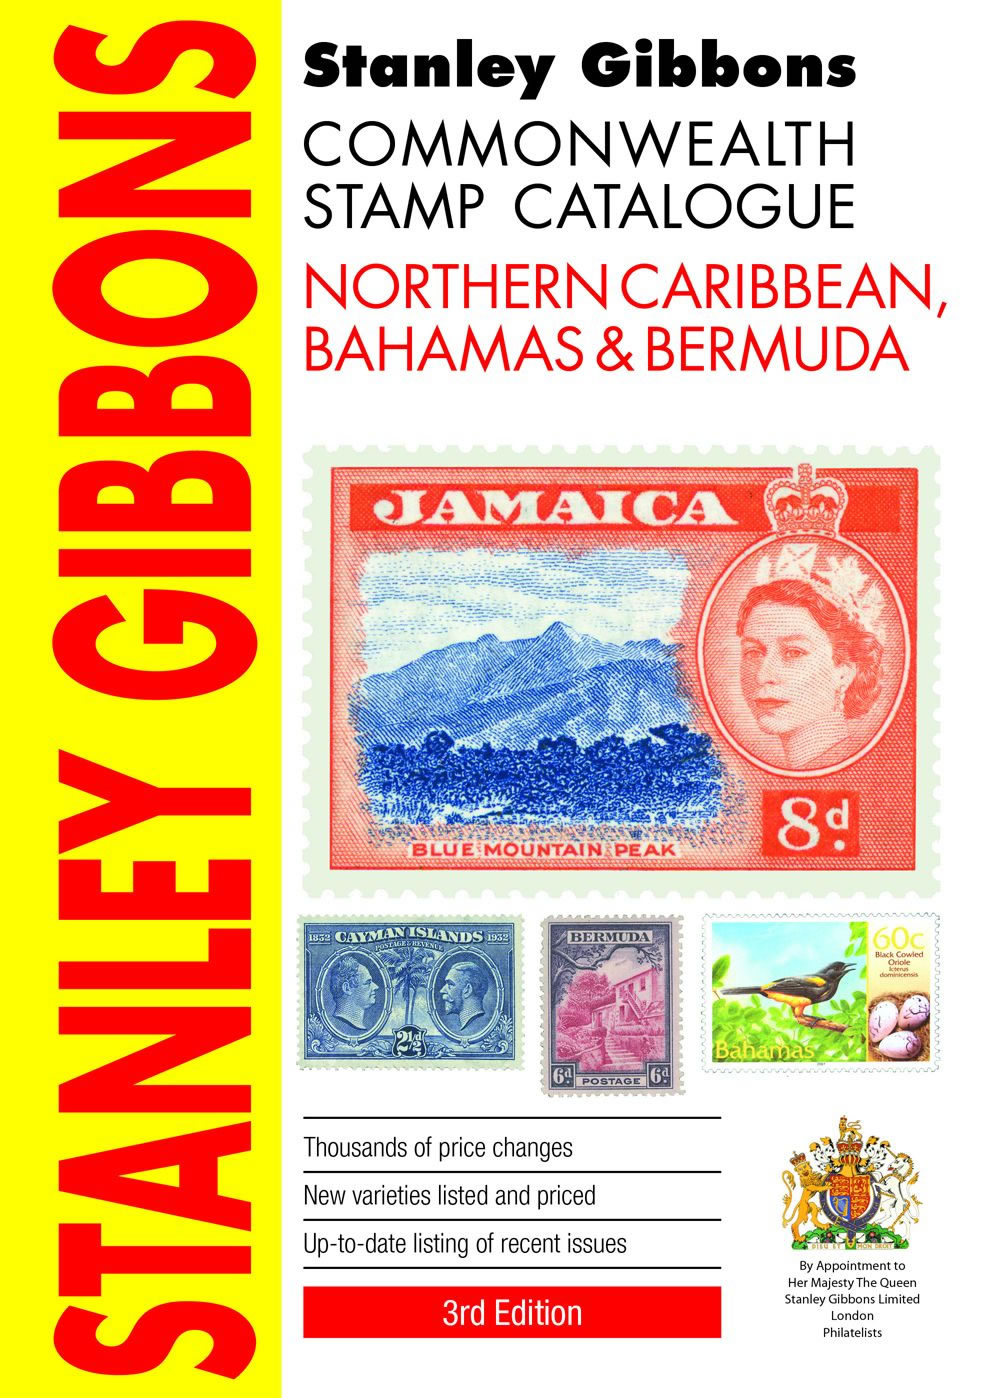 Northern Caribbean, Bahamas & Bermuda stamp catalogue